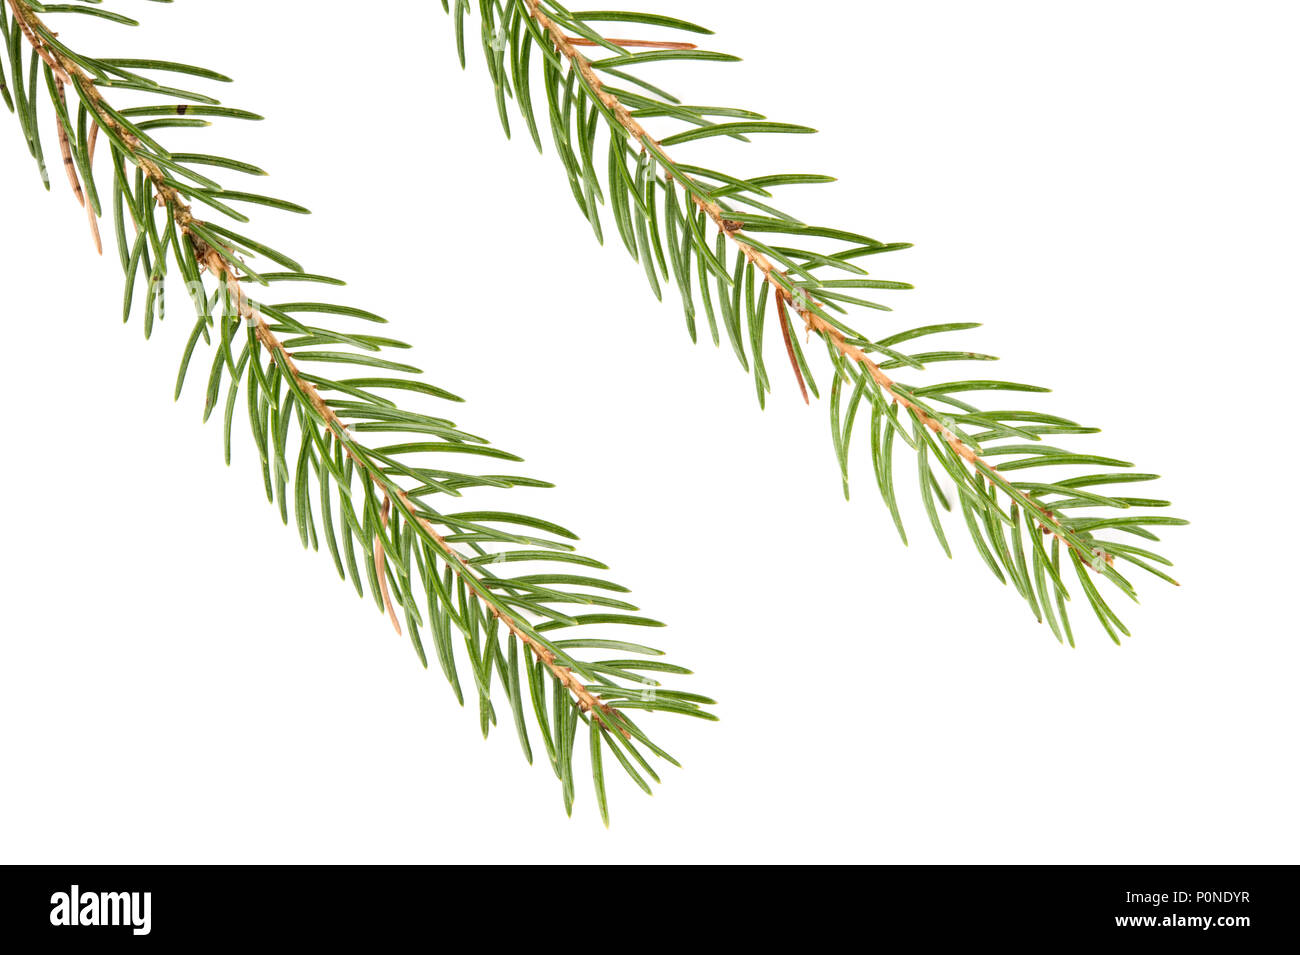 Spruce (Picea abies) branch and needles isolated on white background. - Stock Image